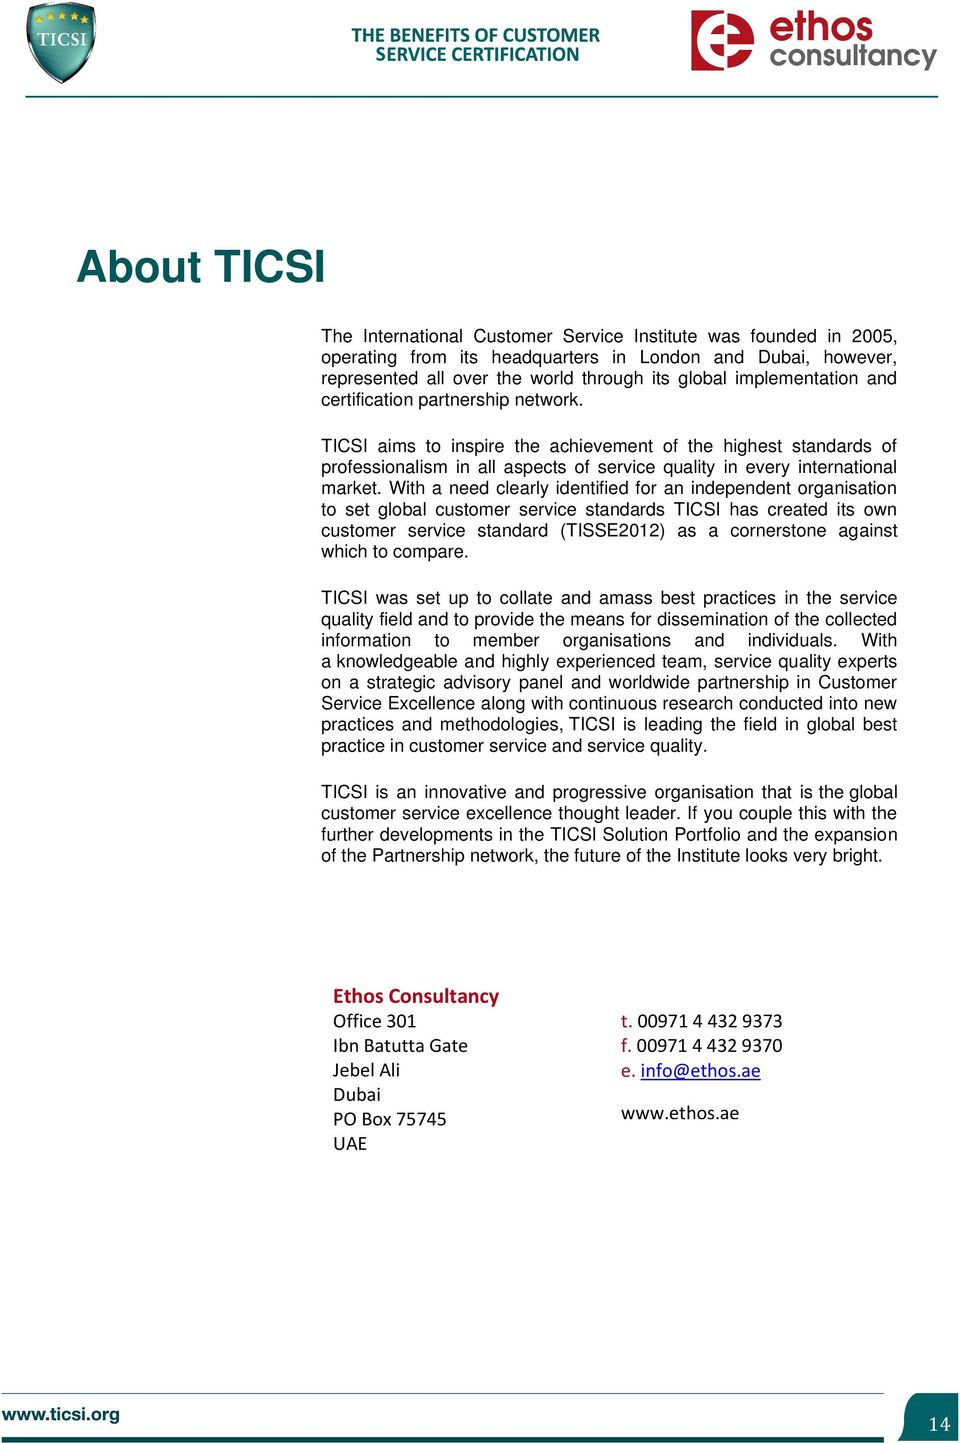 With a need clearly identified for an independent organisation to set global customer service standards TICSI has created its own customer service standard (TISSE2012) as a cornerstone against which